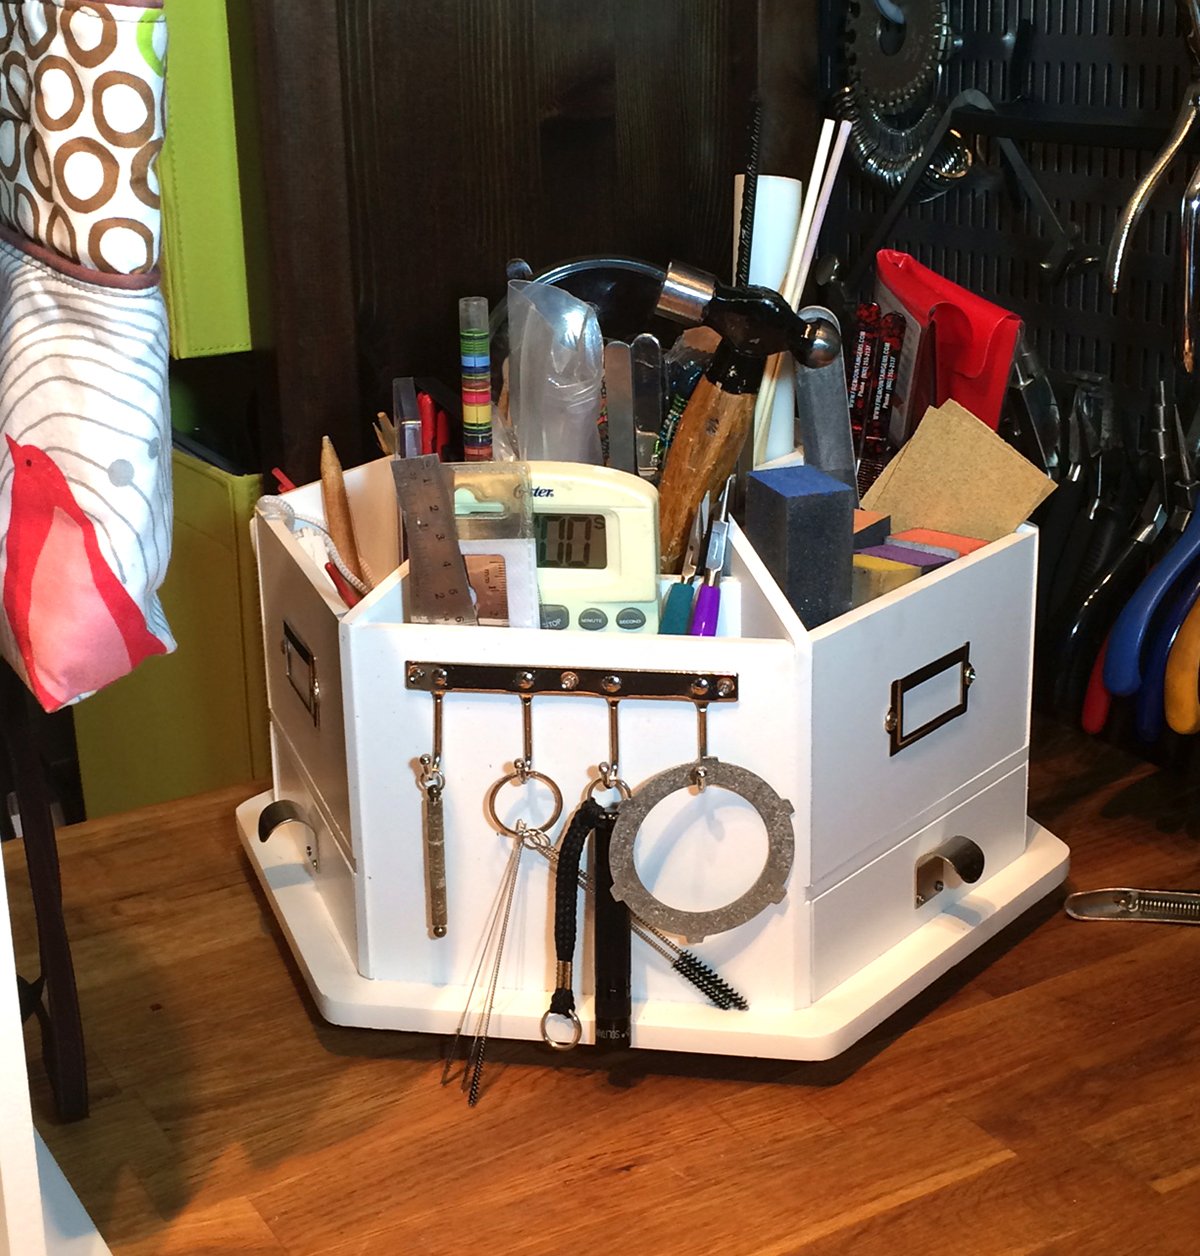 Go Organize Me caddy for organizing your studio tools and jewelry-making supplies